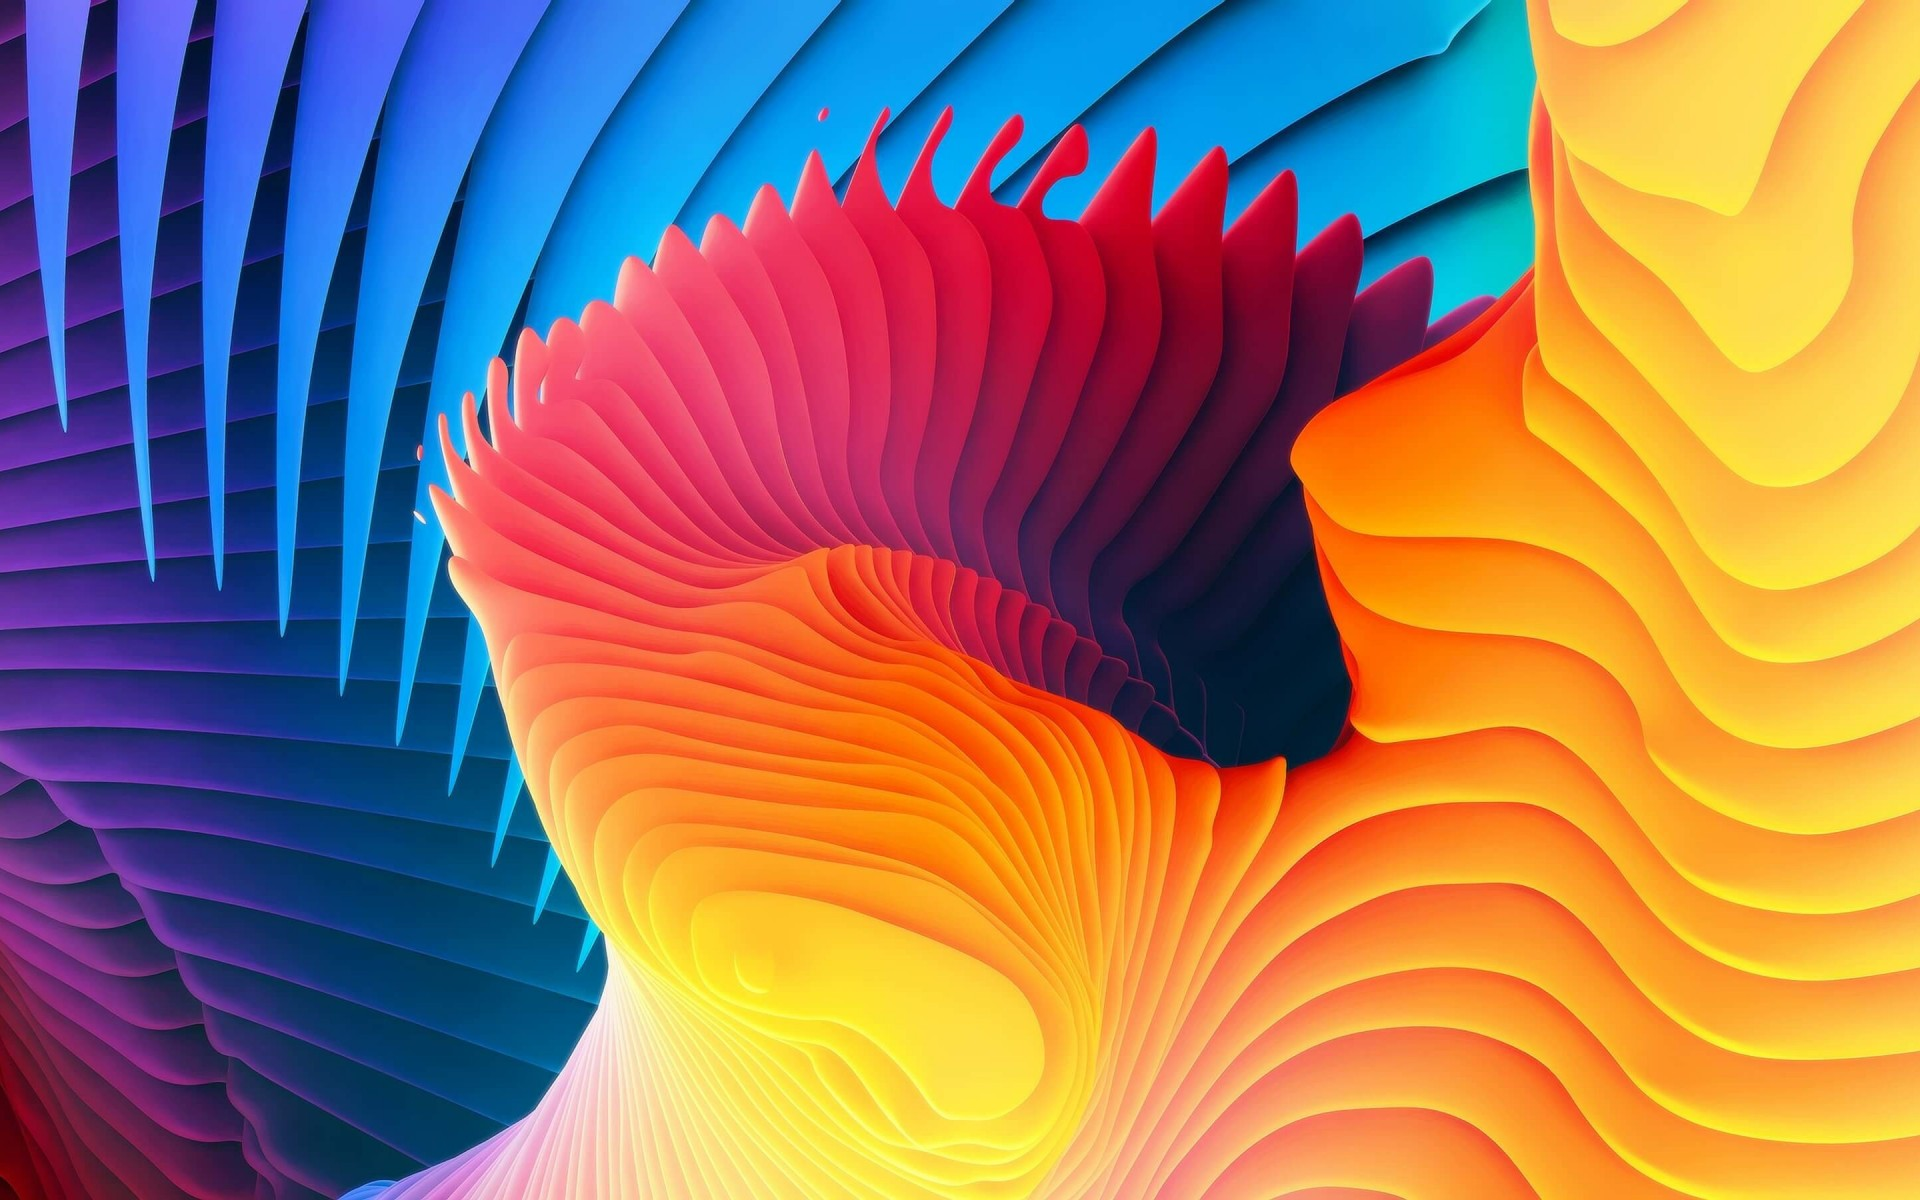 3D Colorful Spiral Wallpaper for Desktop 1920x1200